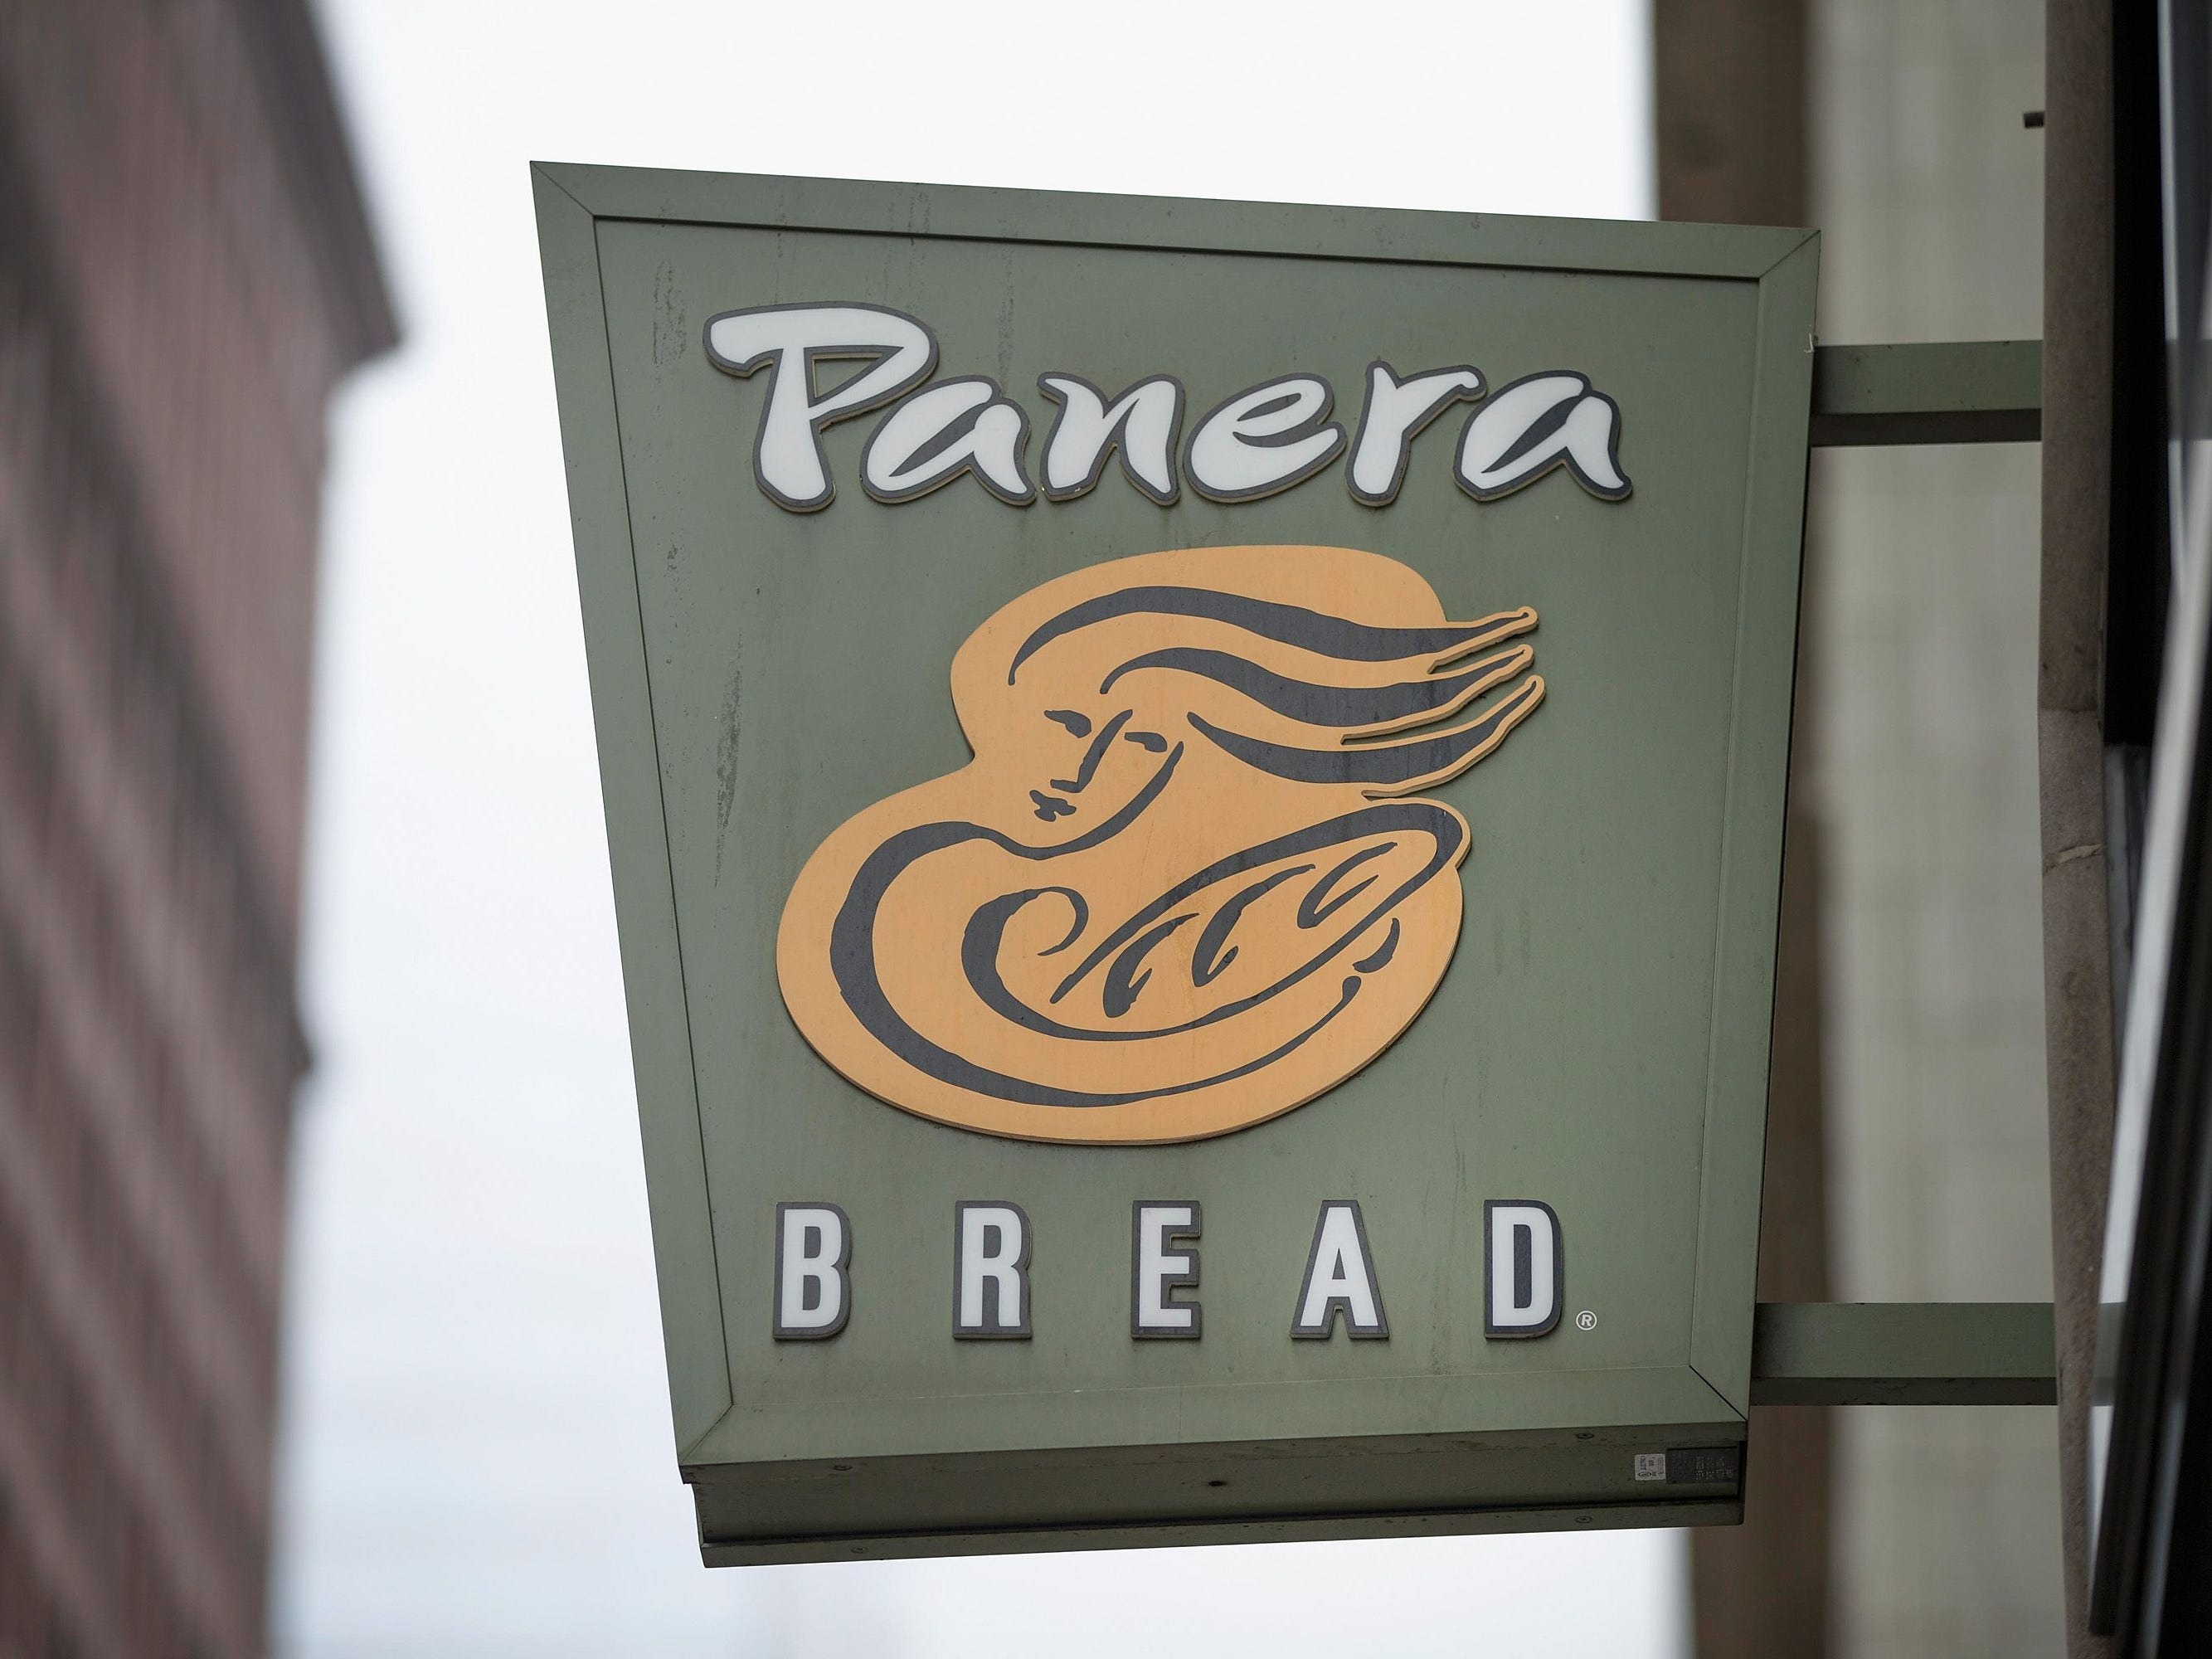 Panera Bread will close its downtown Birmingham location and open a new store in Royal Oak, at the Woodward Corners by Beaumont development at 13 Mile and Woodward.